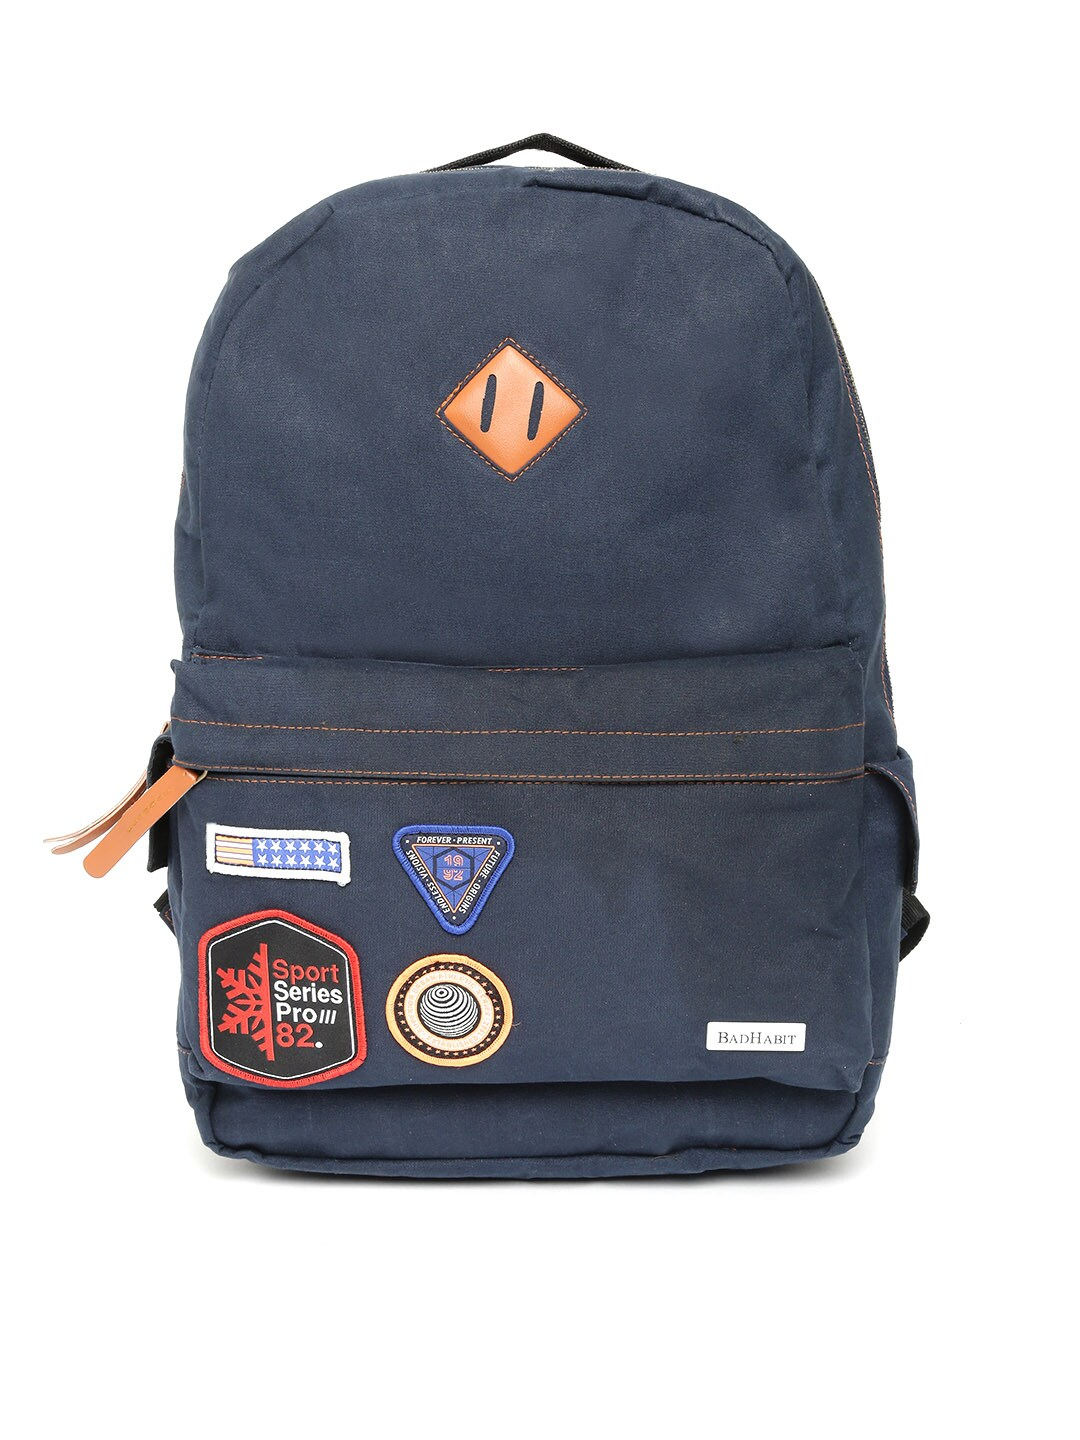 680a42e1fe40 Canvas Backpacks - Buy Canvas Backpacks online in India